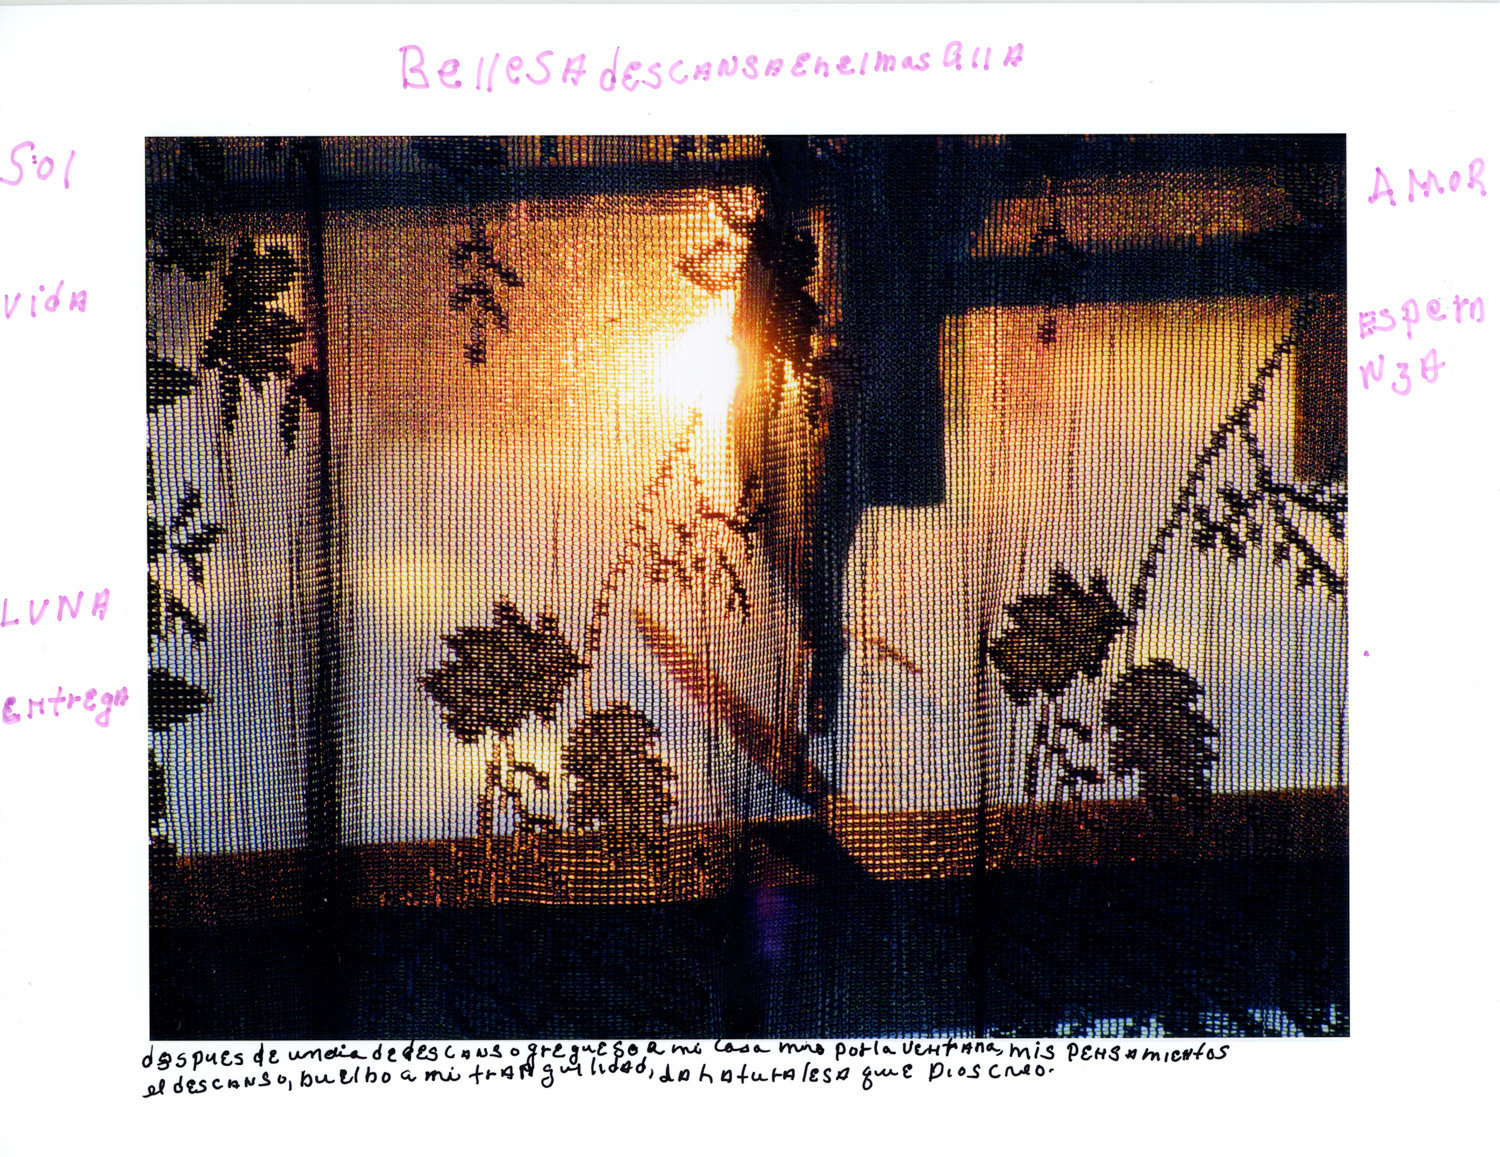 Carmen Adorno photographed the late day sun through a curtain she made in her home, and wrote musings in Spanish on the print. Adorno is a member of the Bronx Senior Photo League, which is having a group exhibition at the Bronx Documentary Center through Feb. 2.